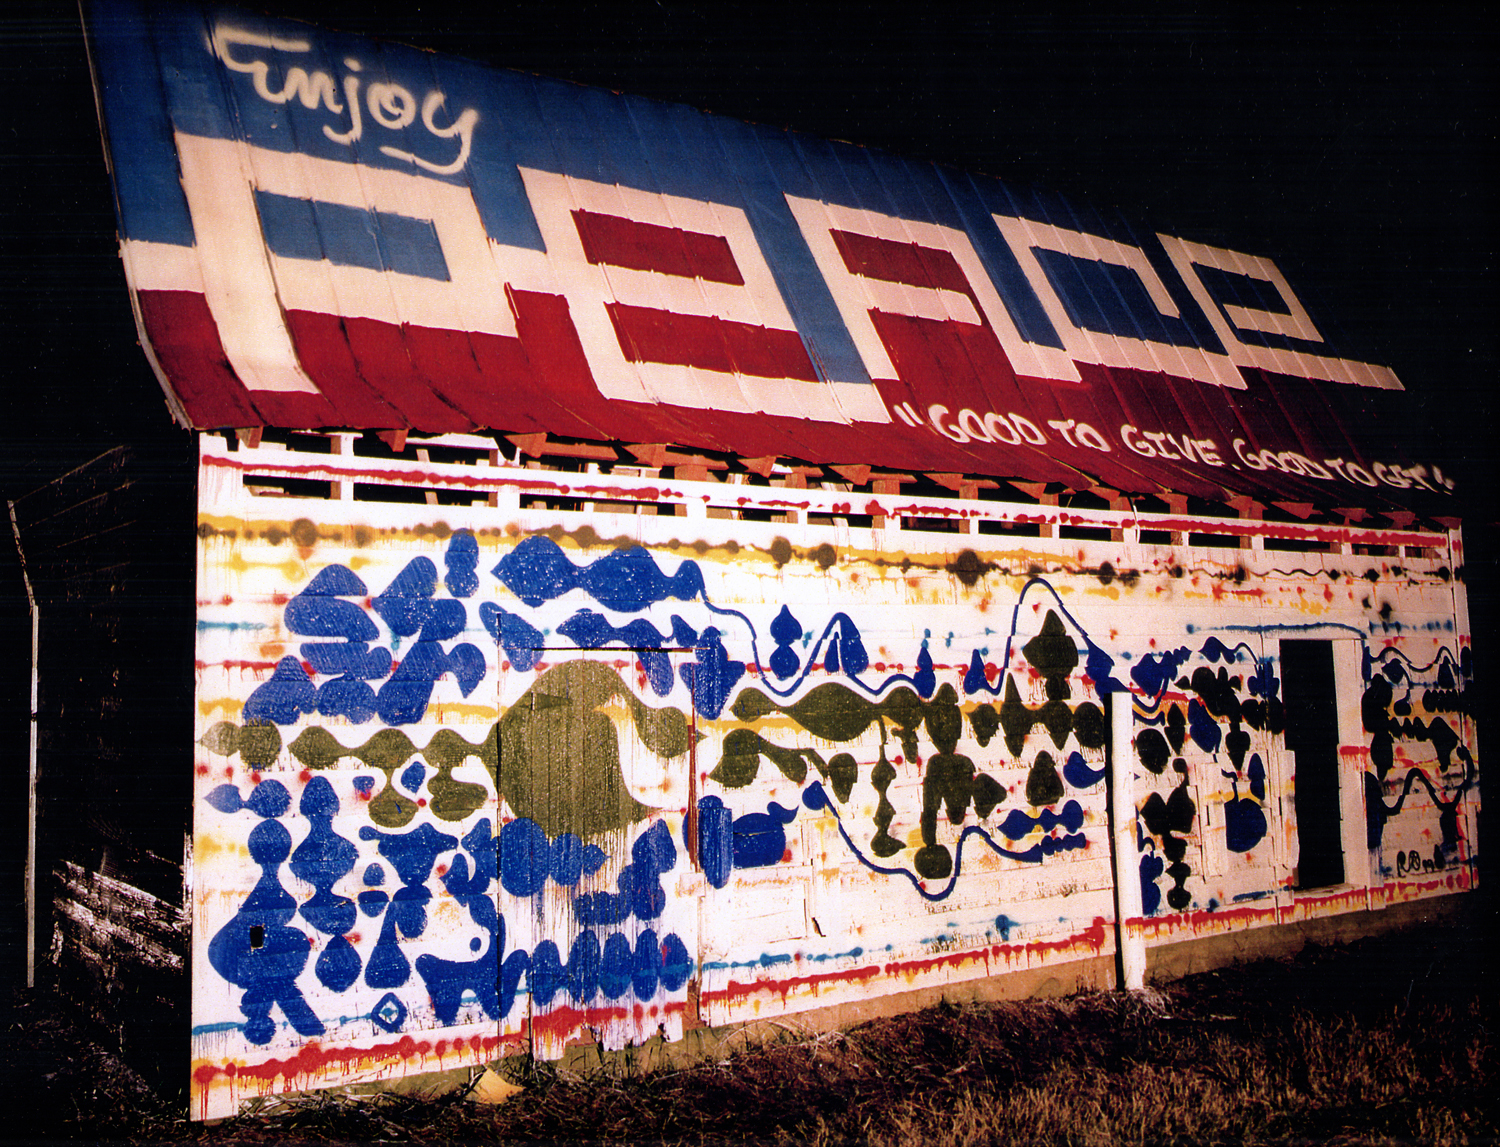 installation view,  Dog House of Peace  Cameron, N.C., 1999  with Steve 'ESPO' Powers photo by  Marlene Marino